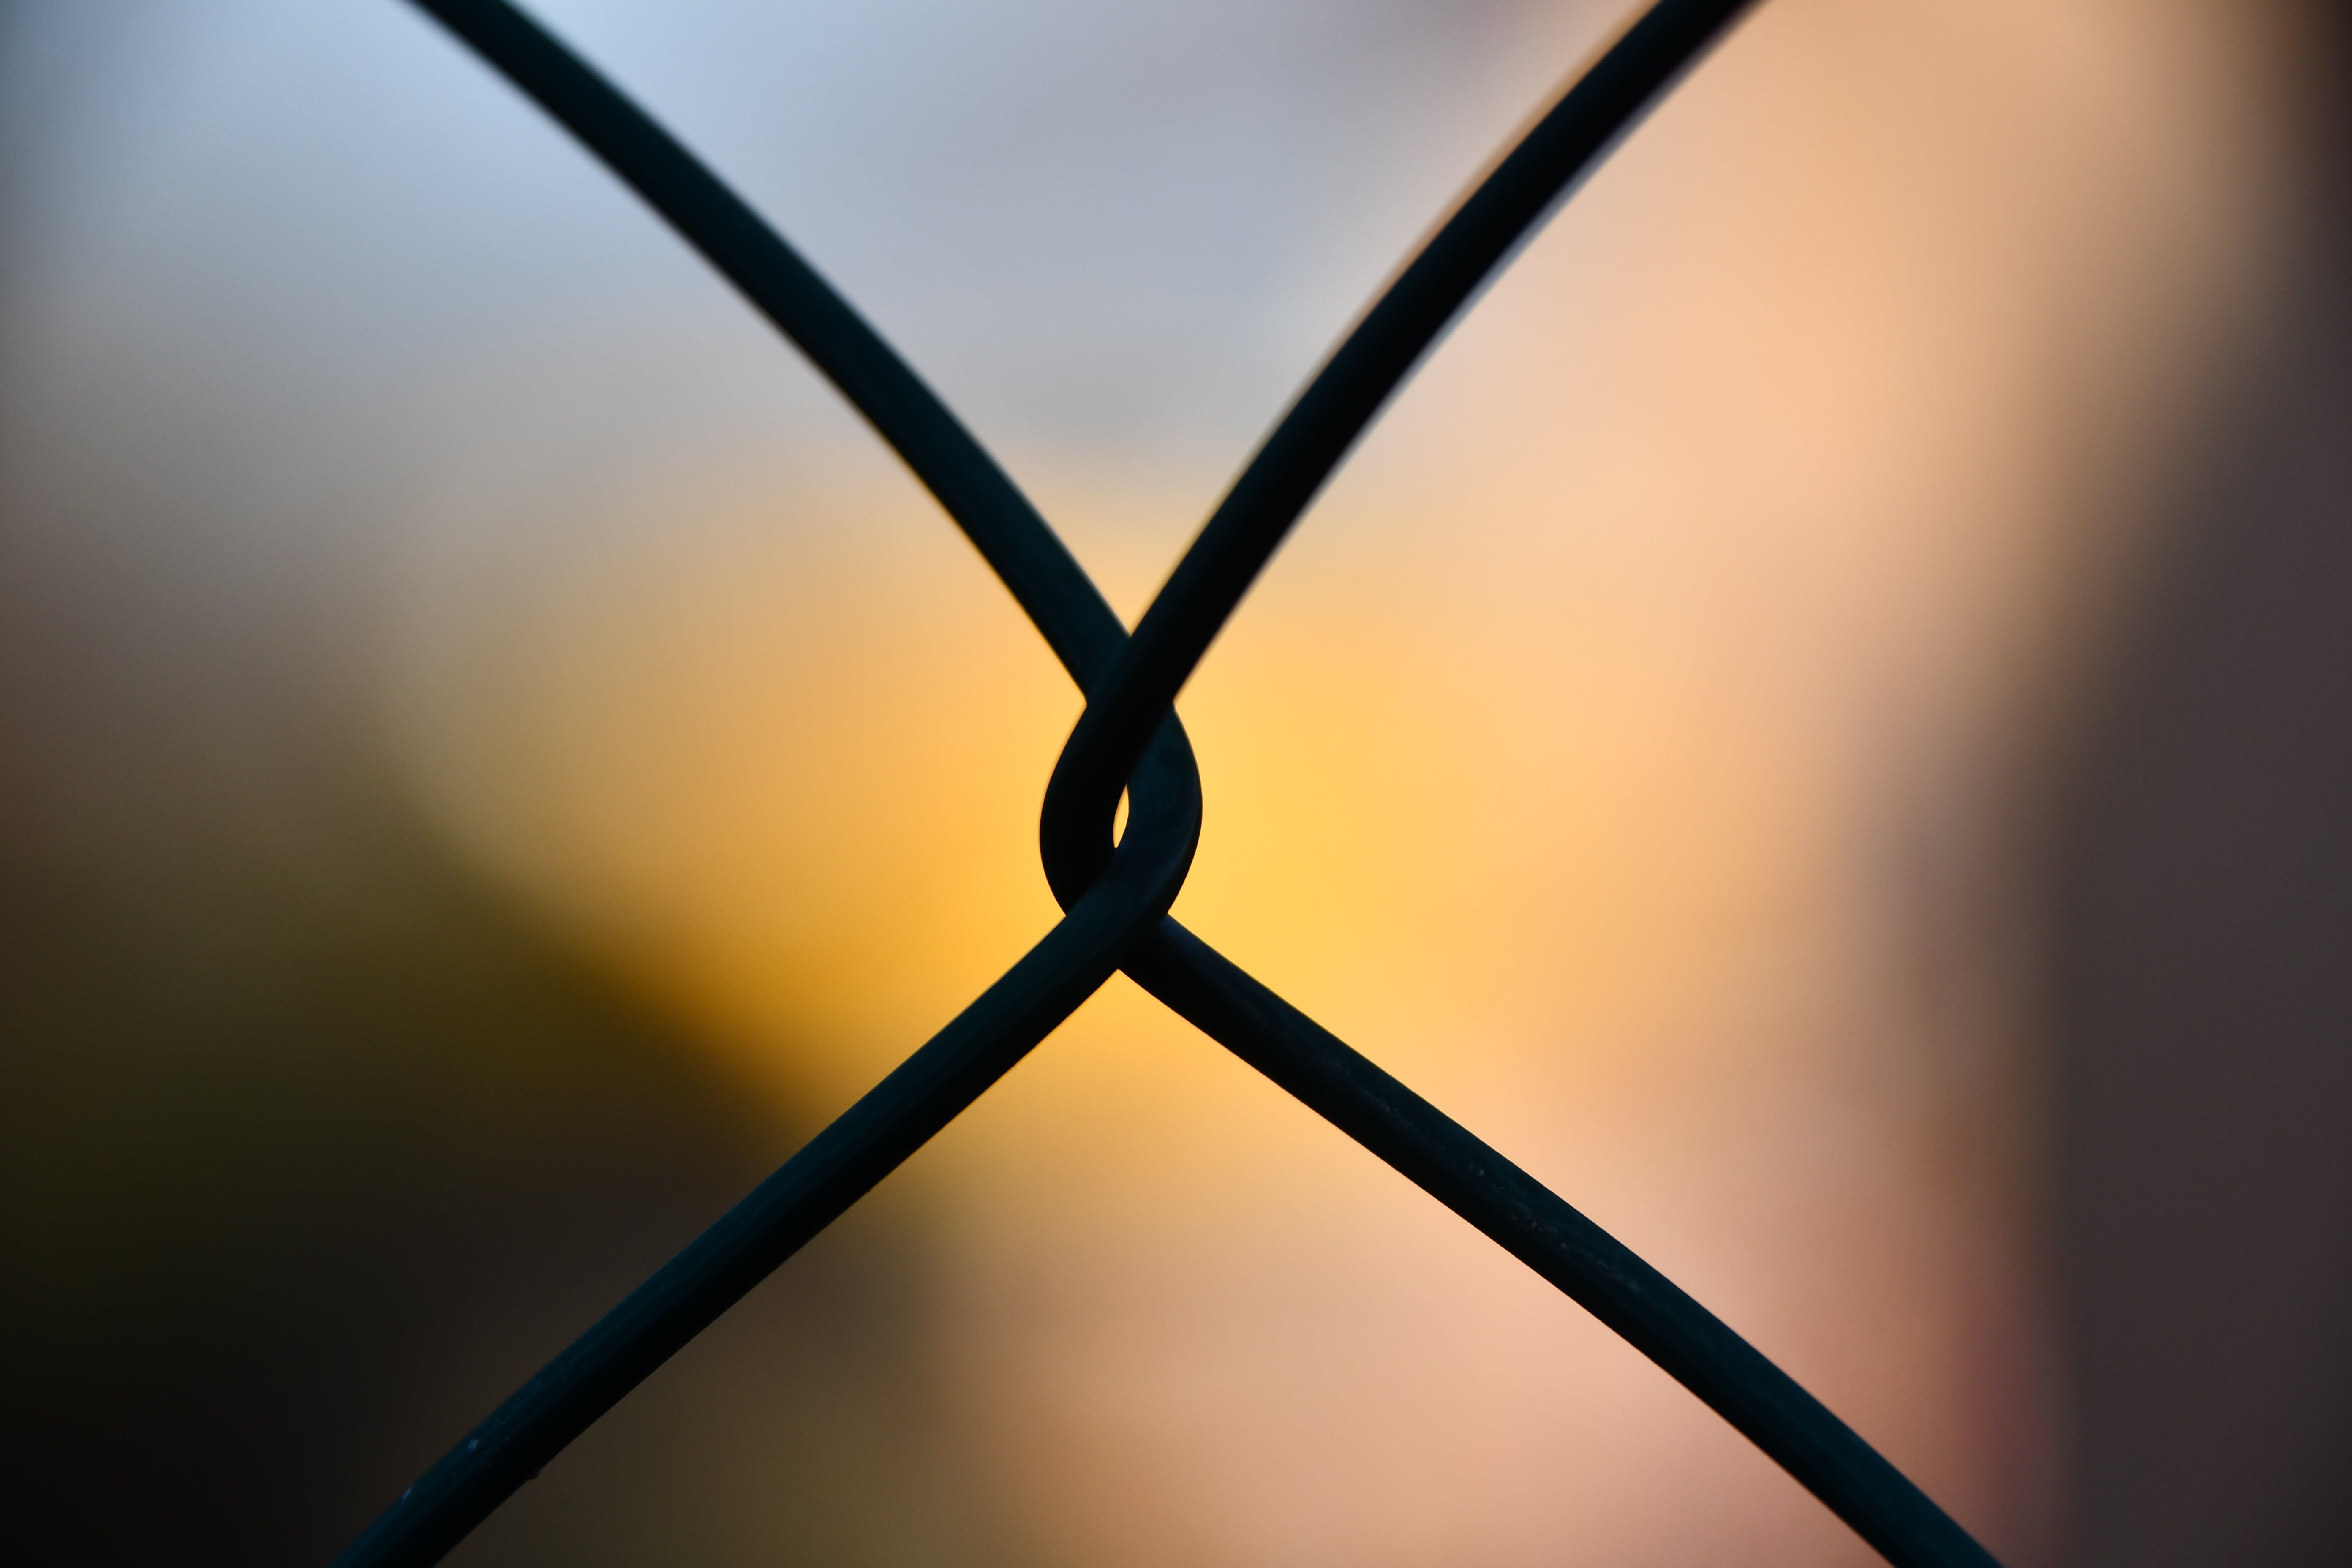 Shallow Focus Photography of Silhouette of Cyclone Wire